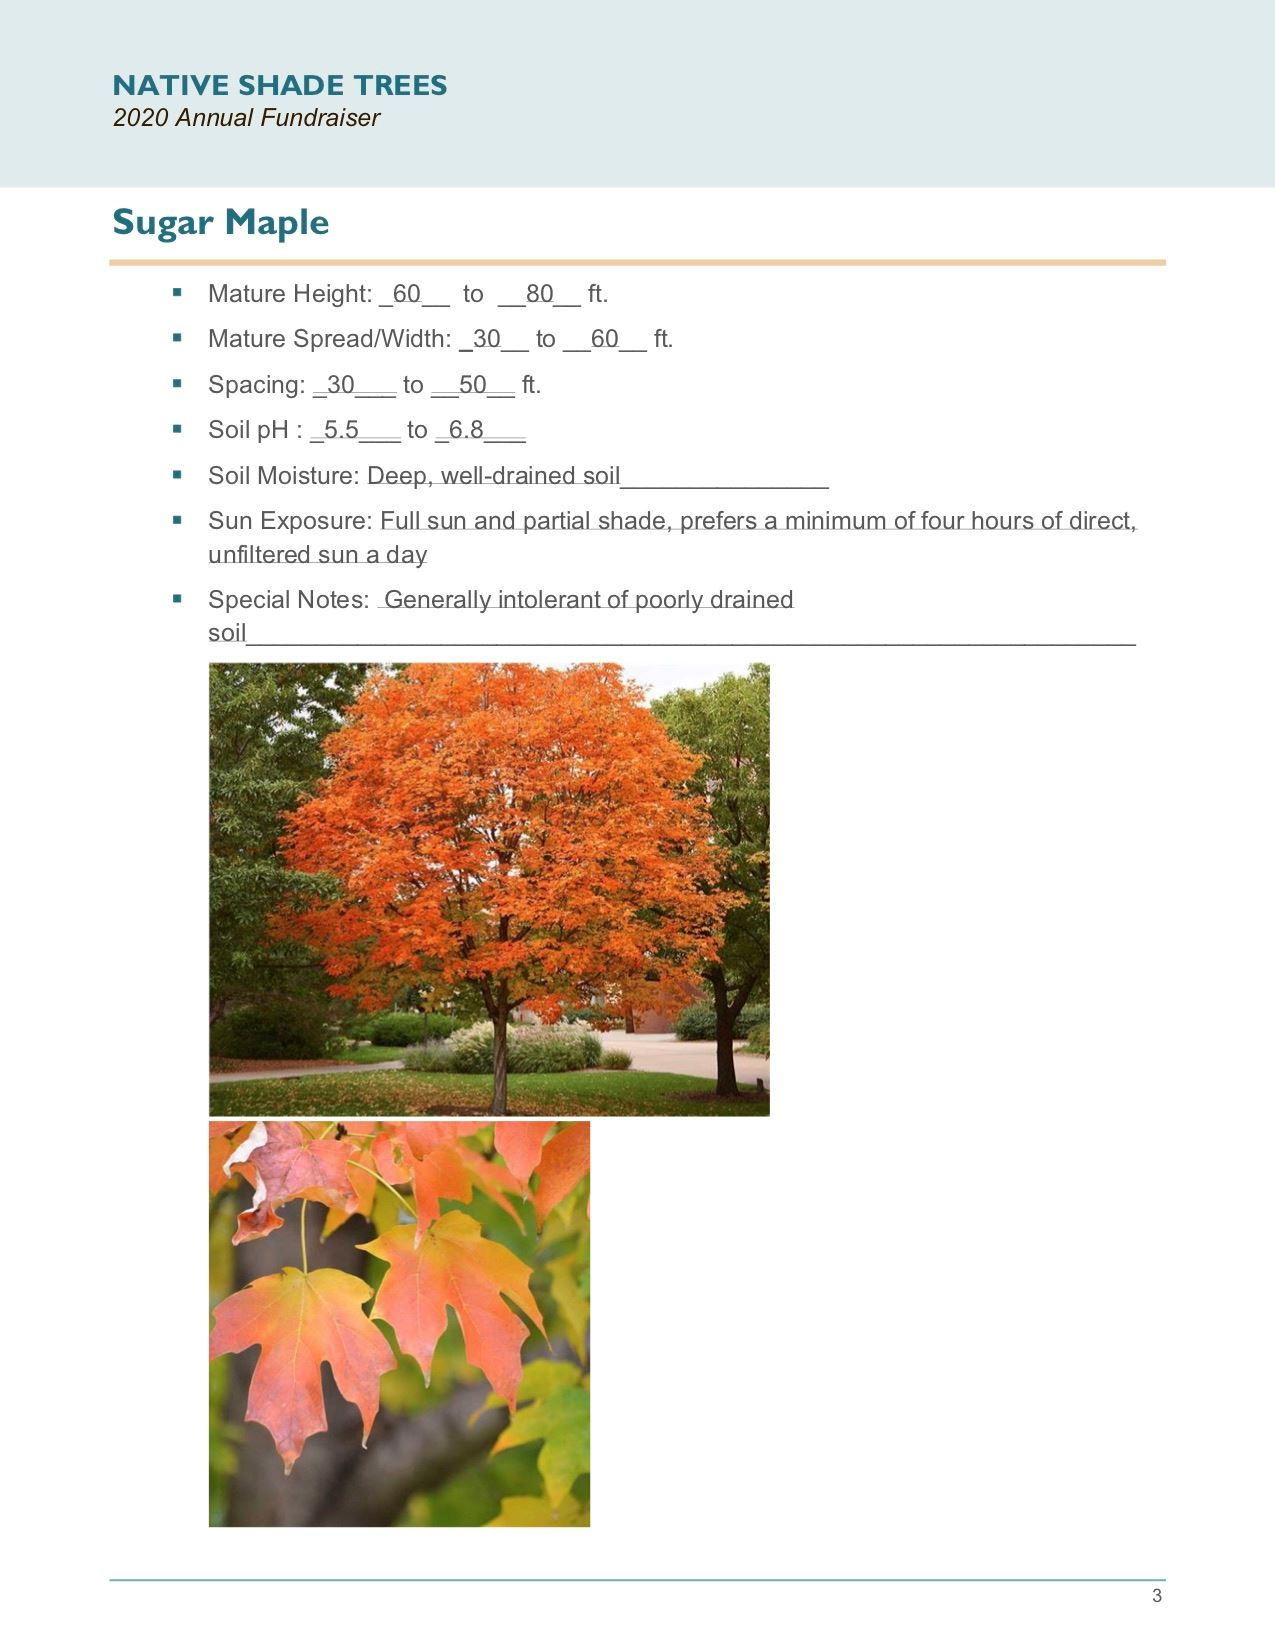 Brochure Template Draft_Native_Shade_Trees2.0(USE)pg3